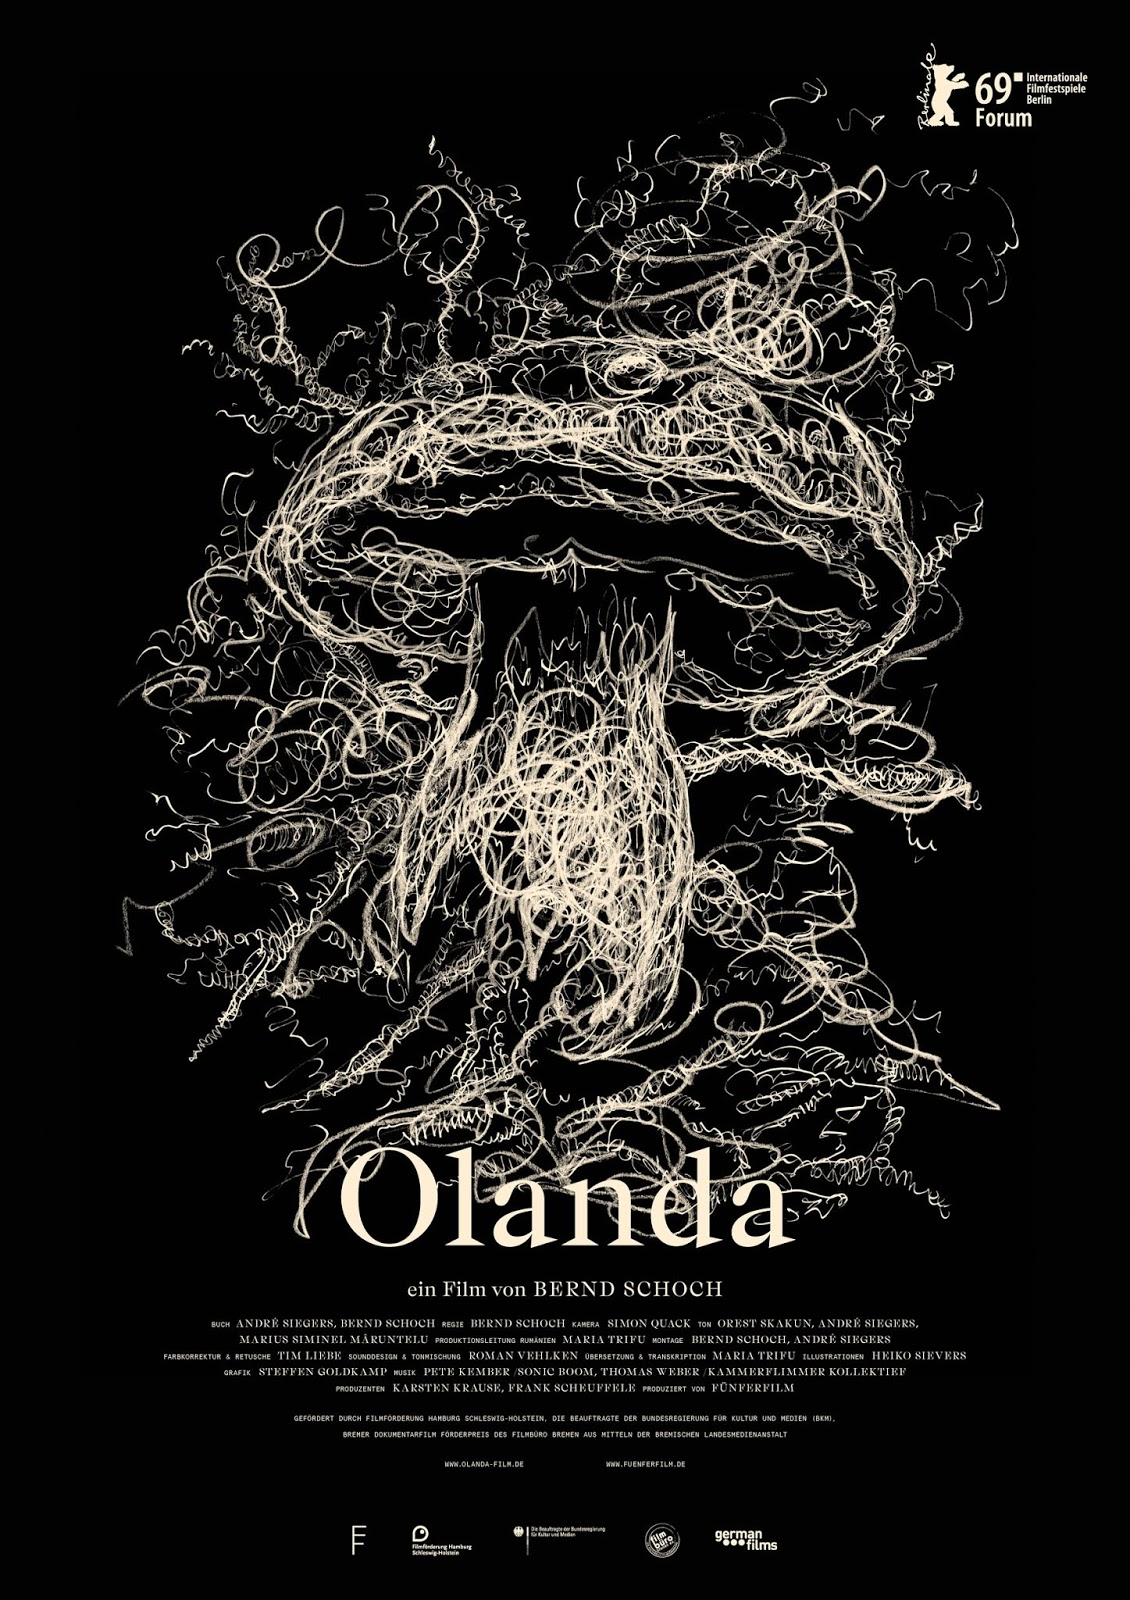 OLANDA movie by Bernd Schoch